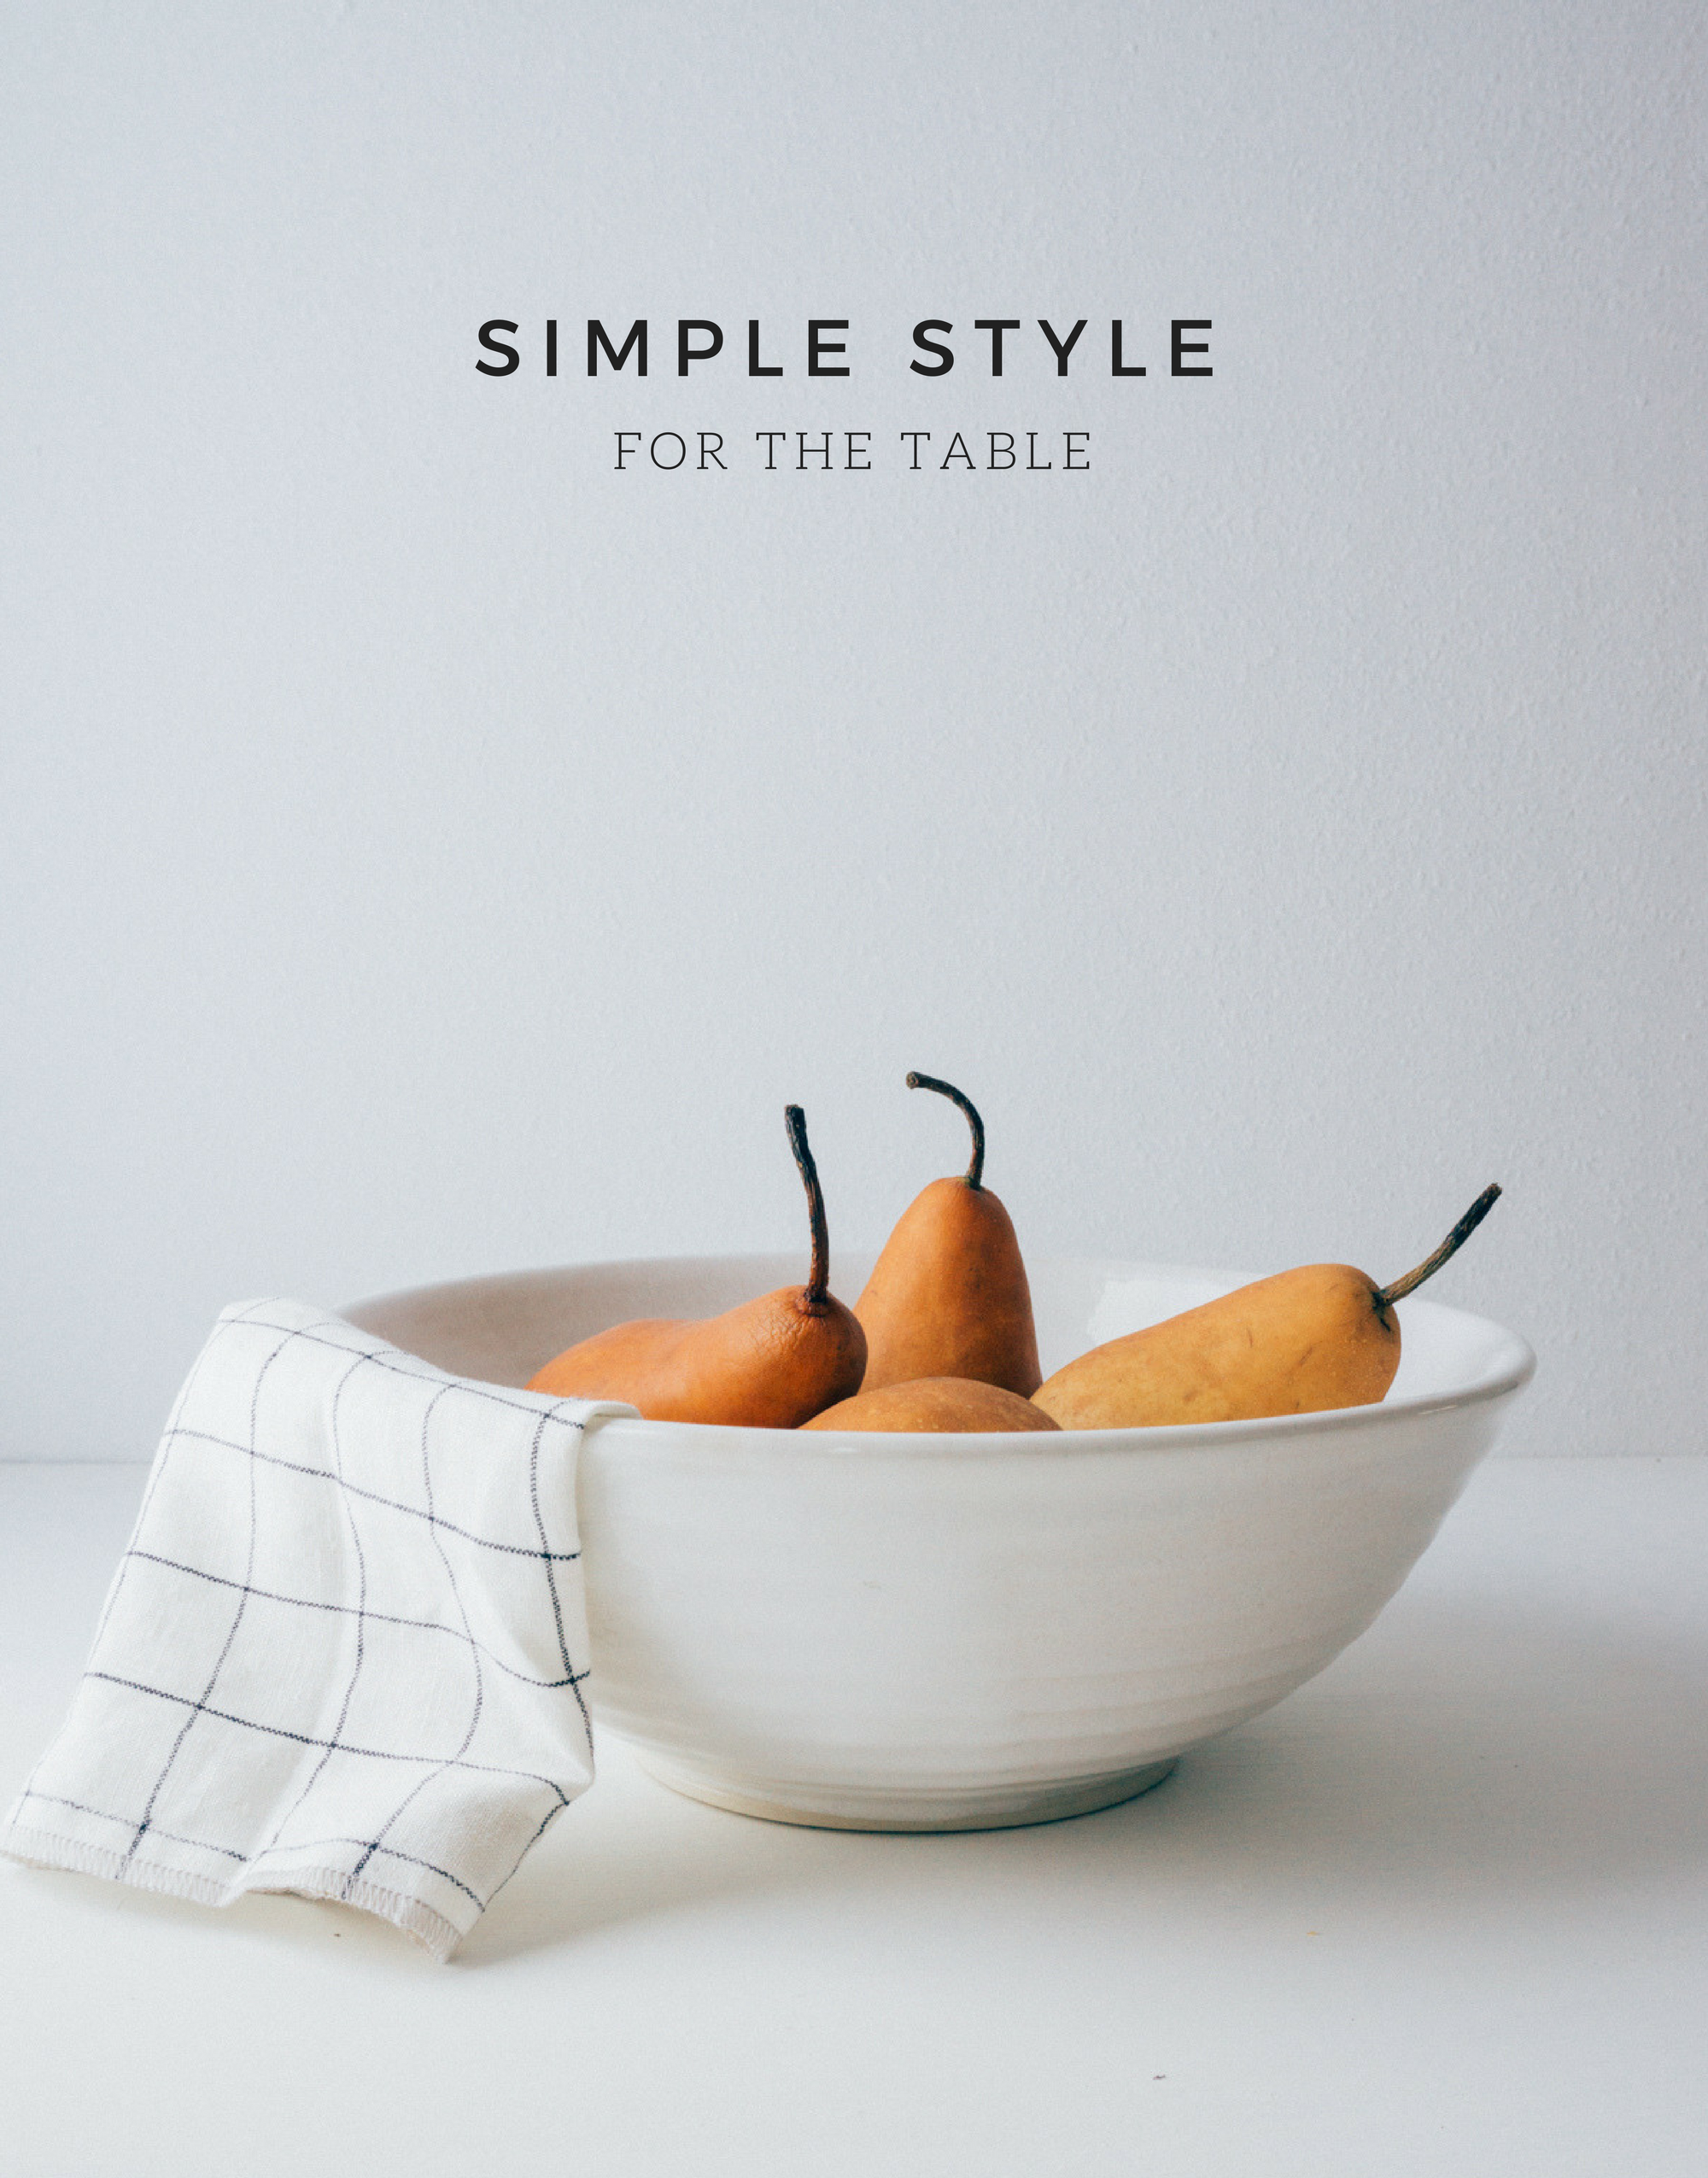 White Serving Bowl by Amanda Ann Palmer Ceramics (VT) and Windowpane Linen Hand Towel by The Everyday Co. (MA).